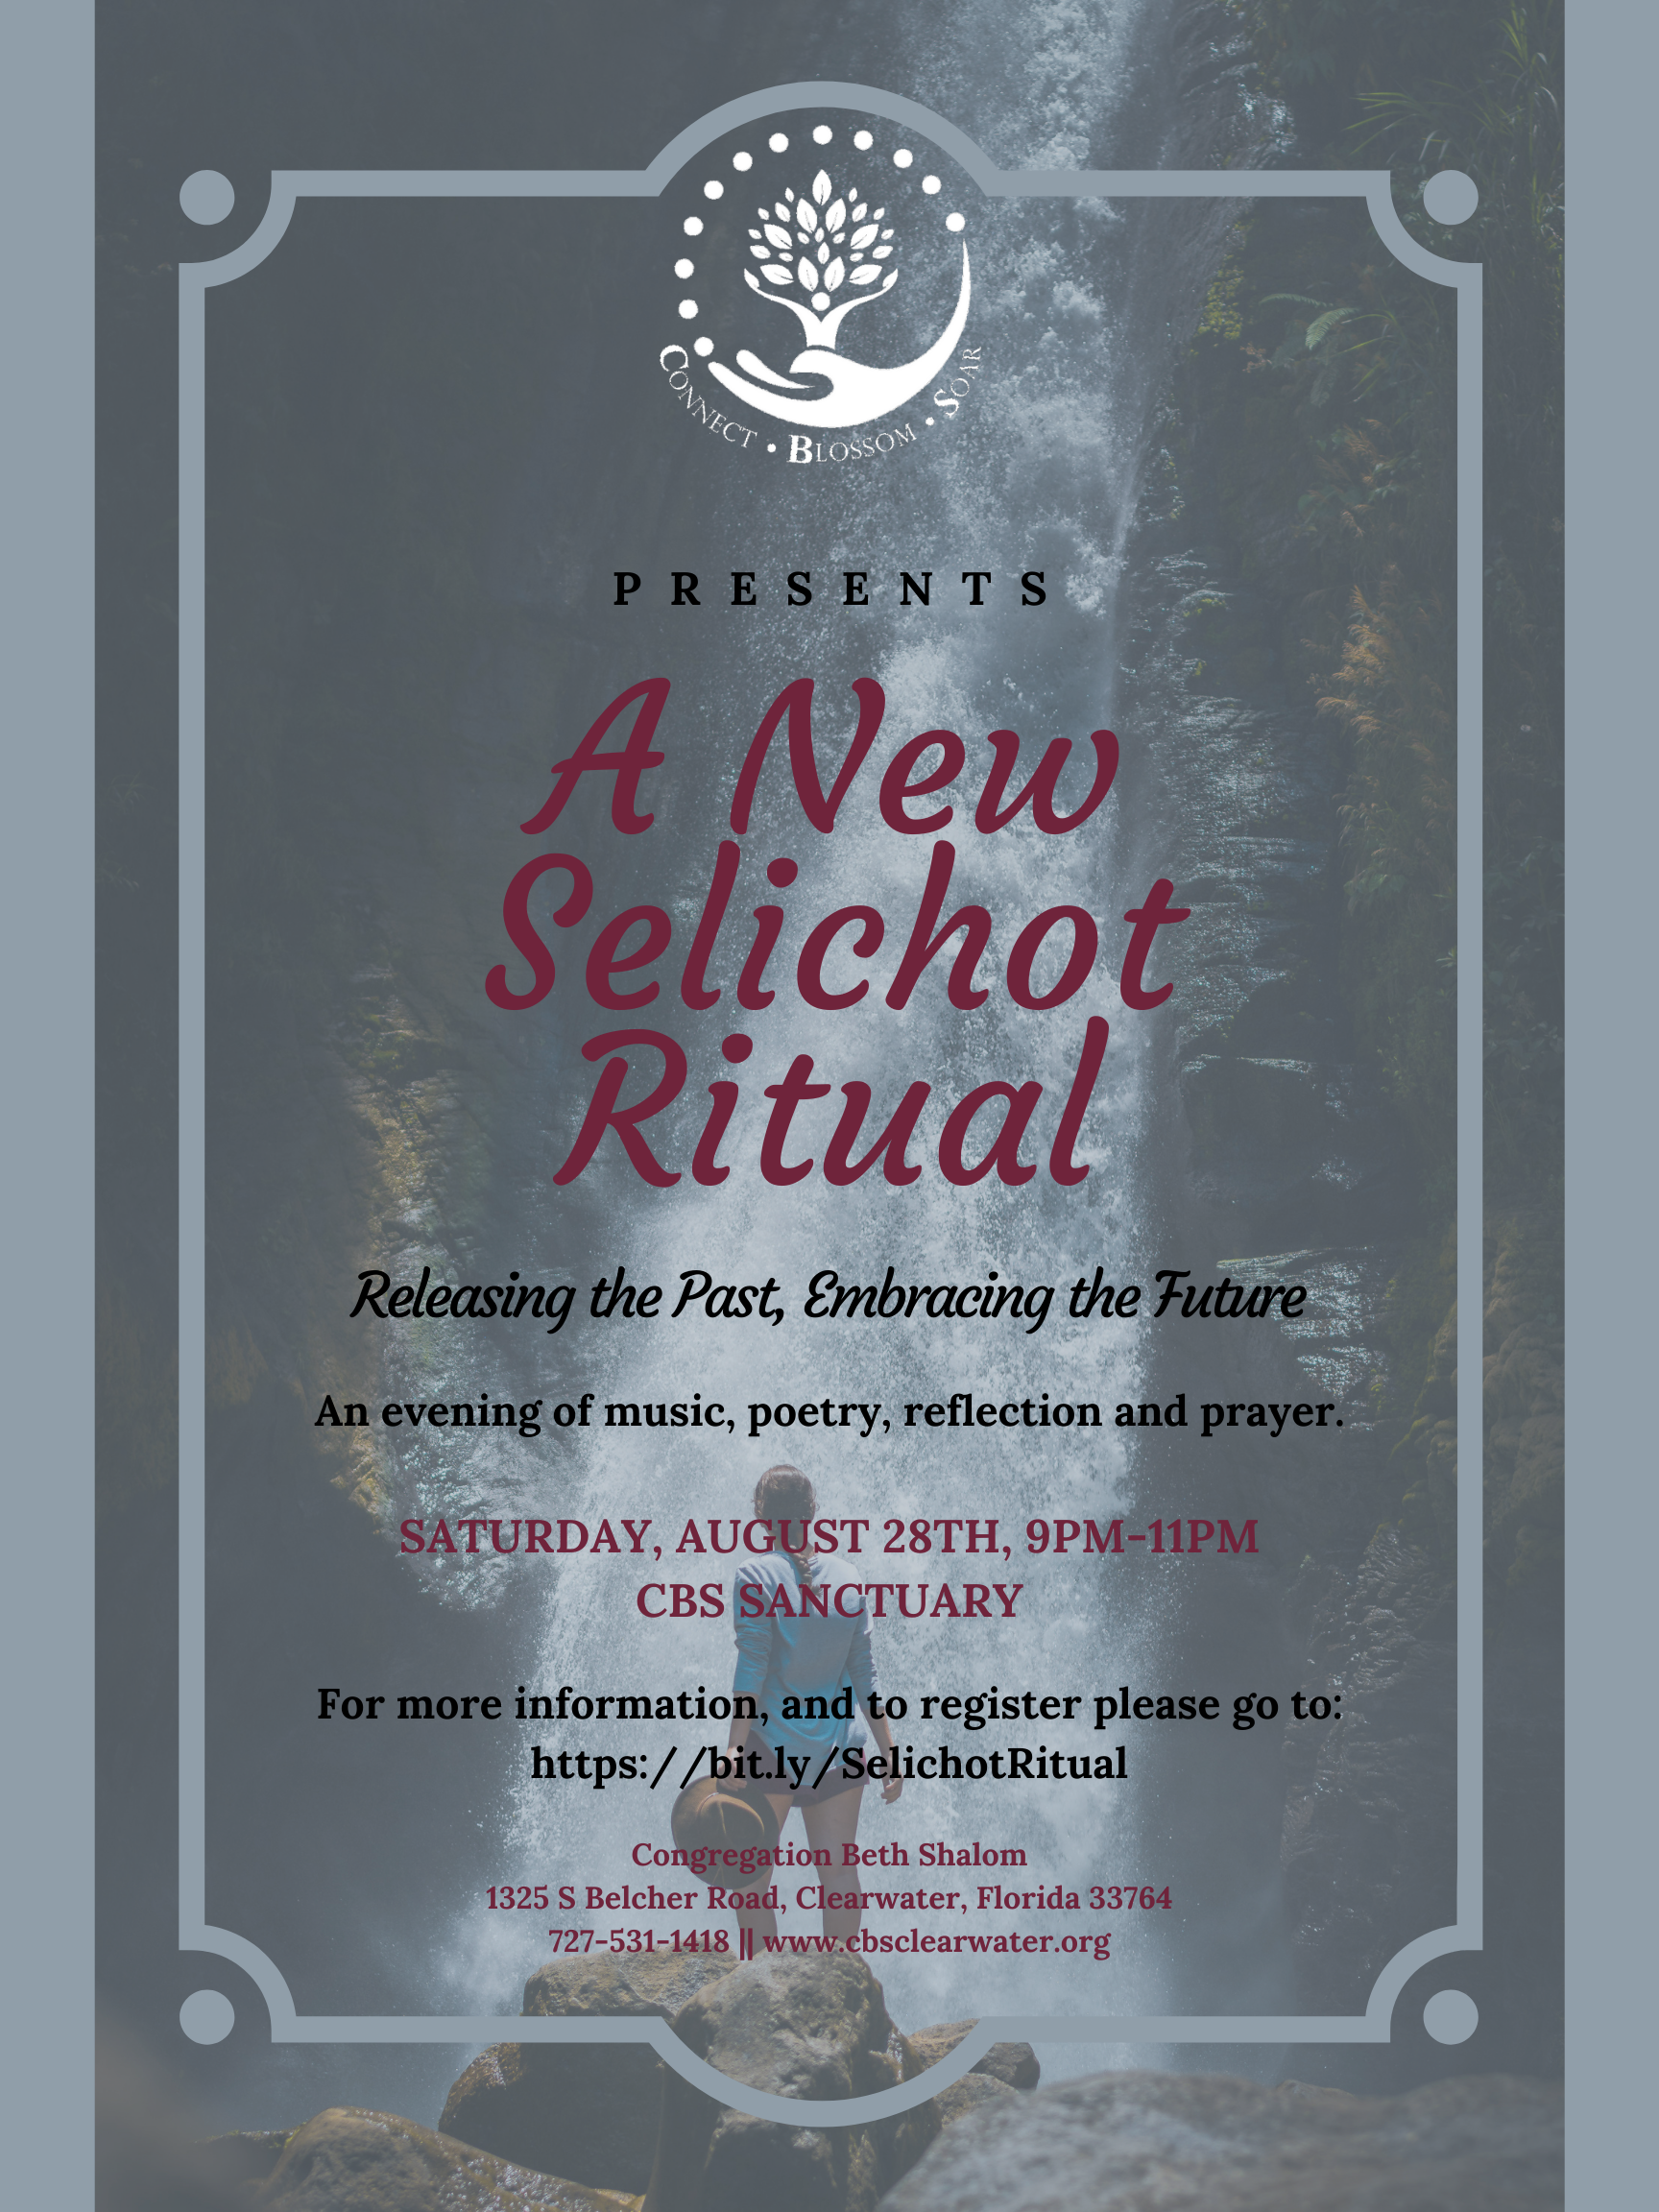 """</a>                                                                                                                                                                                       <span class=""""slider_description"""">An evening for creative reflection with Rabbi Danielle Upbin!</span>                                                                                     <a href=""""https://www.cbsclearwater.org/event/a-new-selichot-ritual-releasing-the-past-embracing-the-future.html"""" class=""""slider_link""""                             target=""""_blank"""">                             Click HERE to register!                            </a>"""